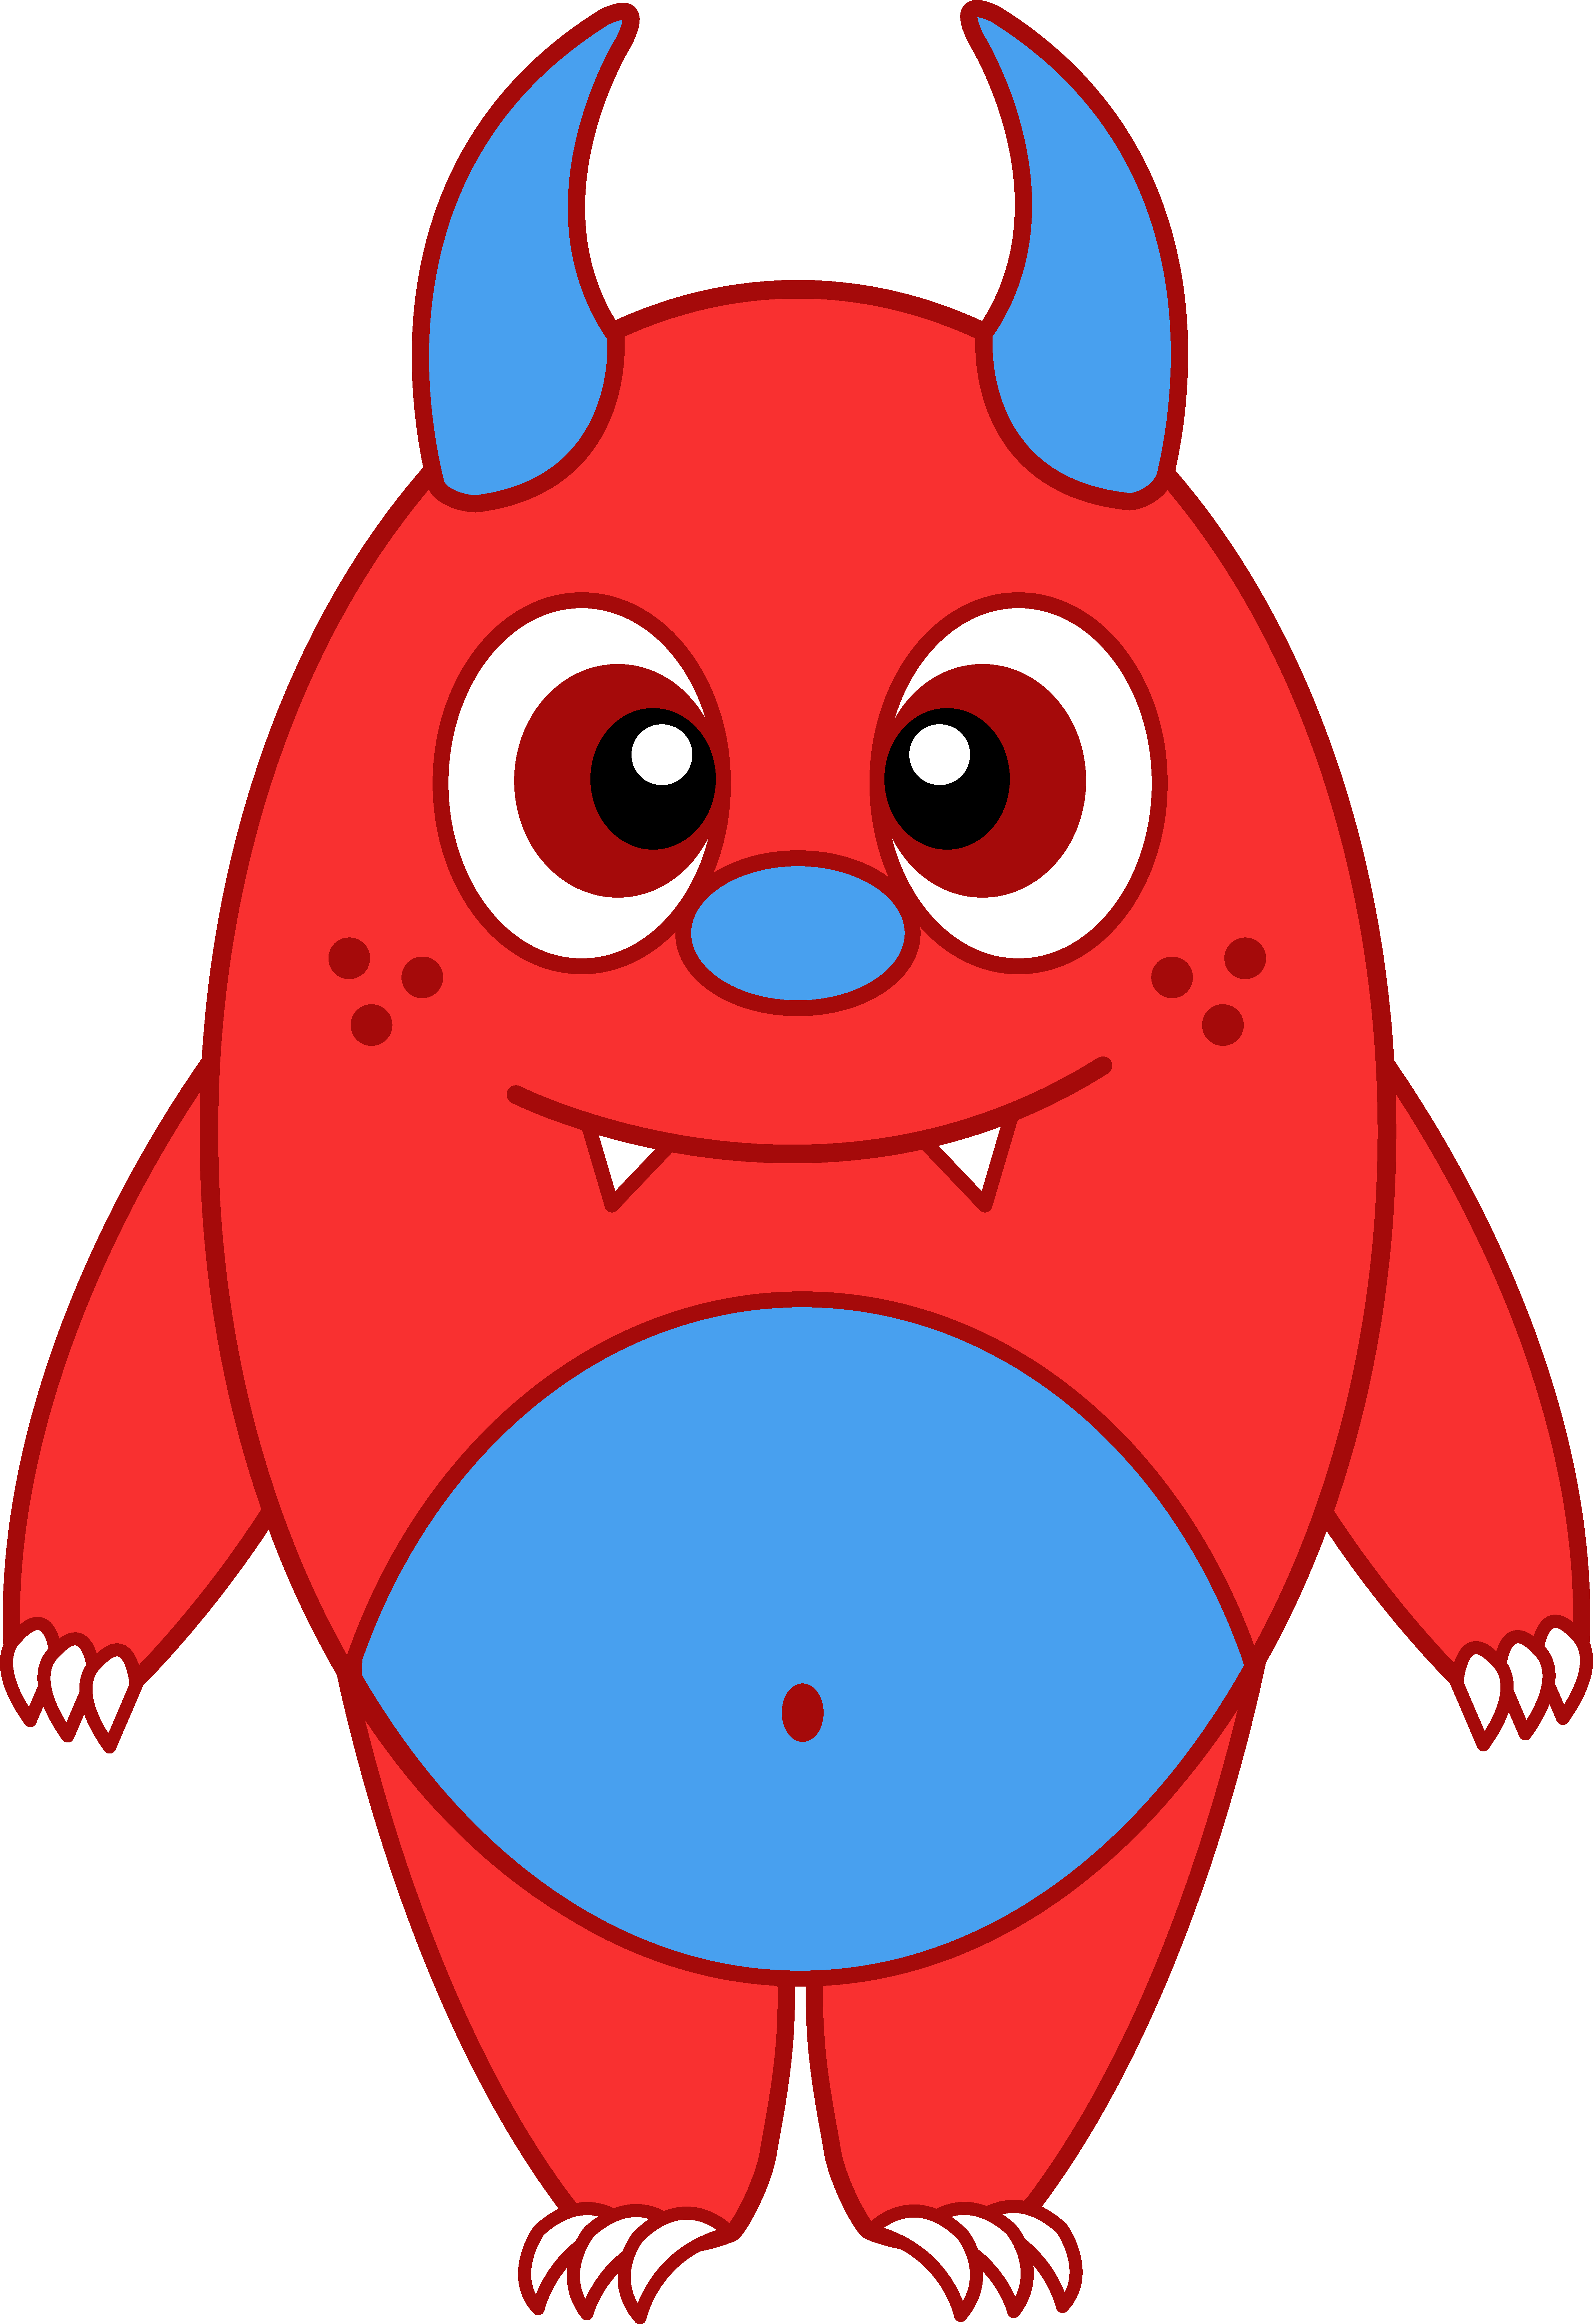 Family clipart monster. Red panda free images